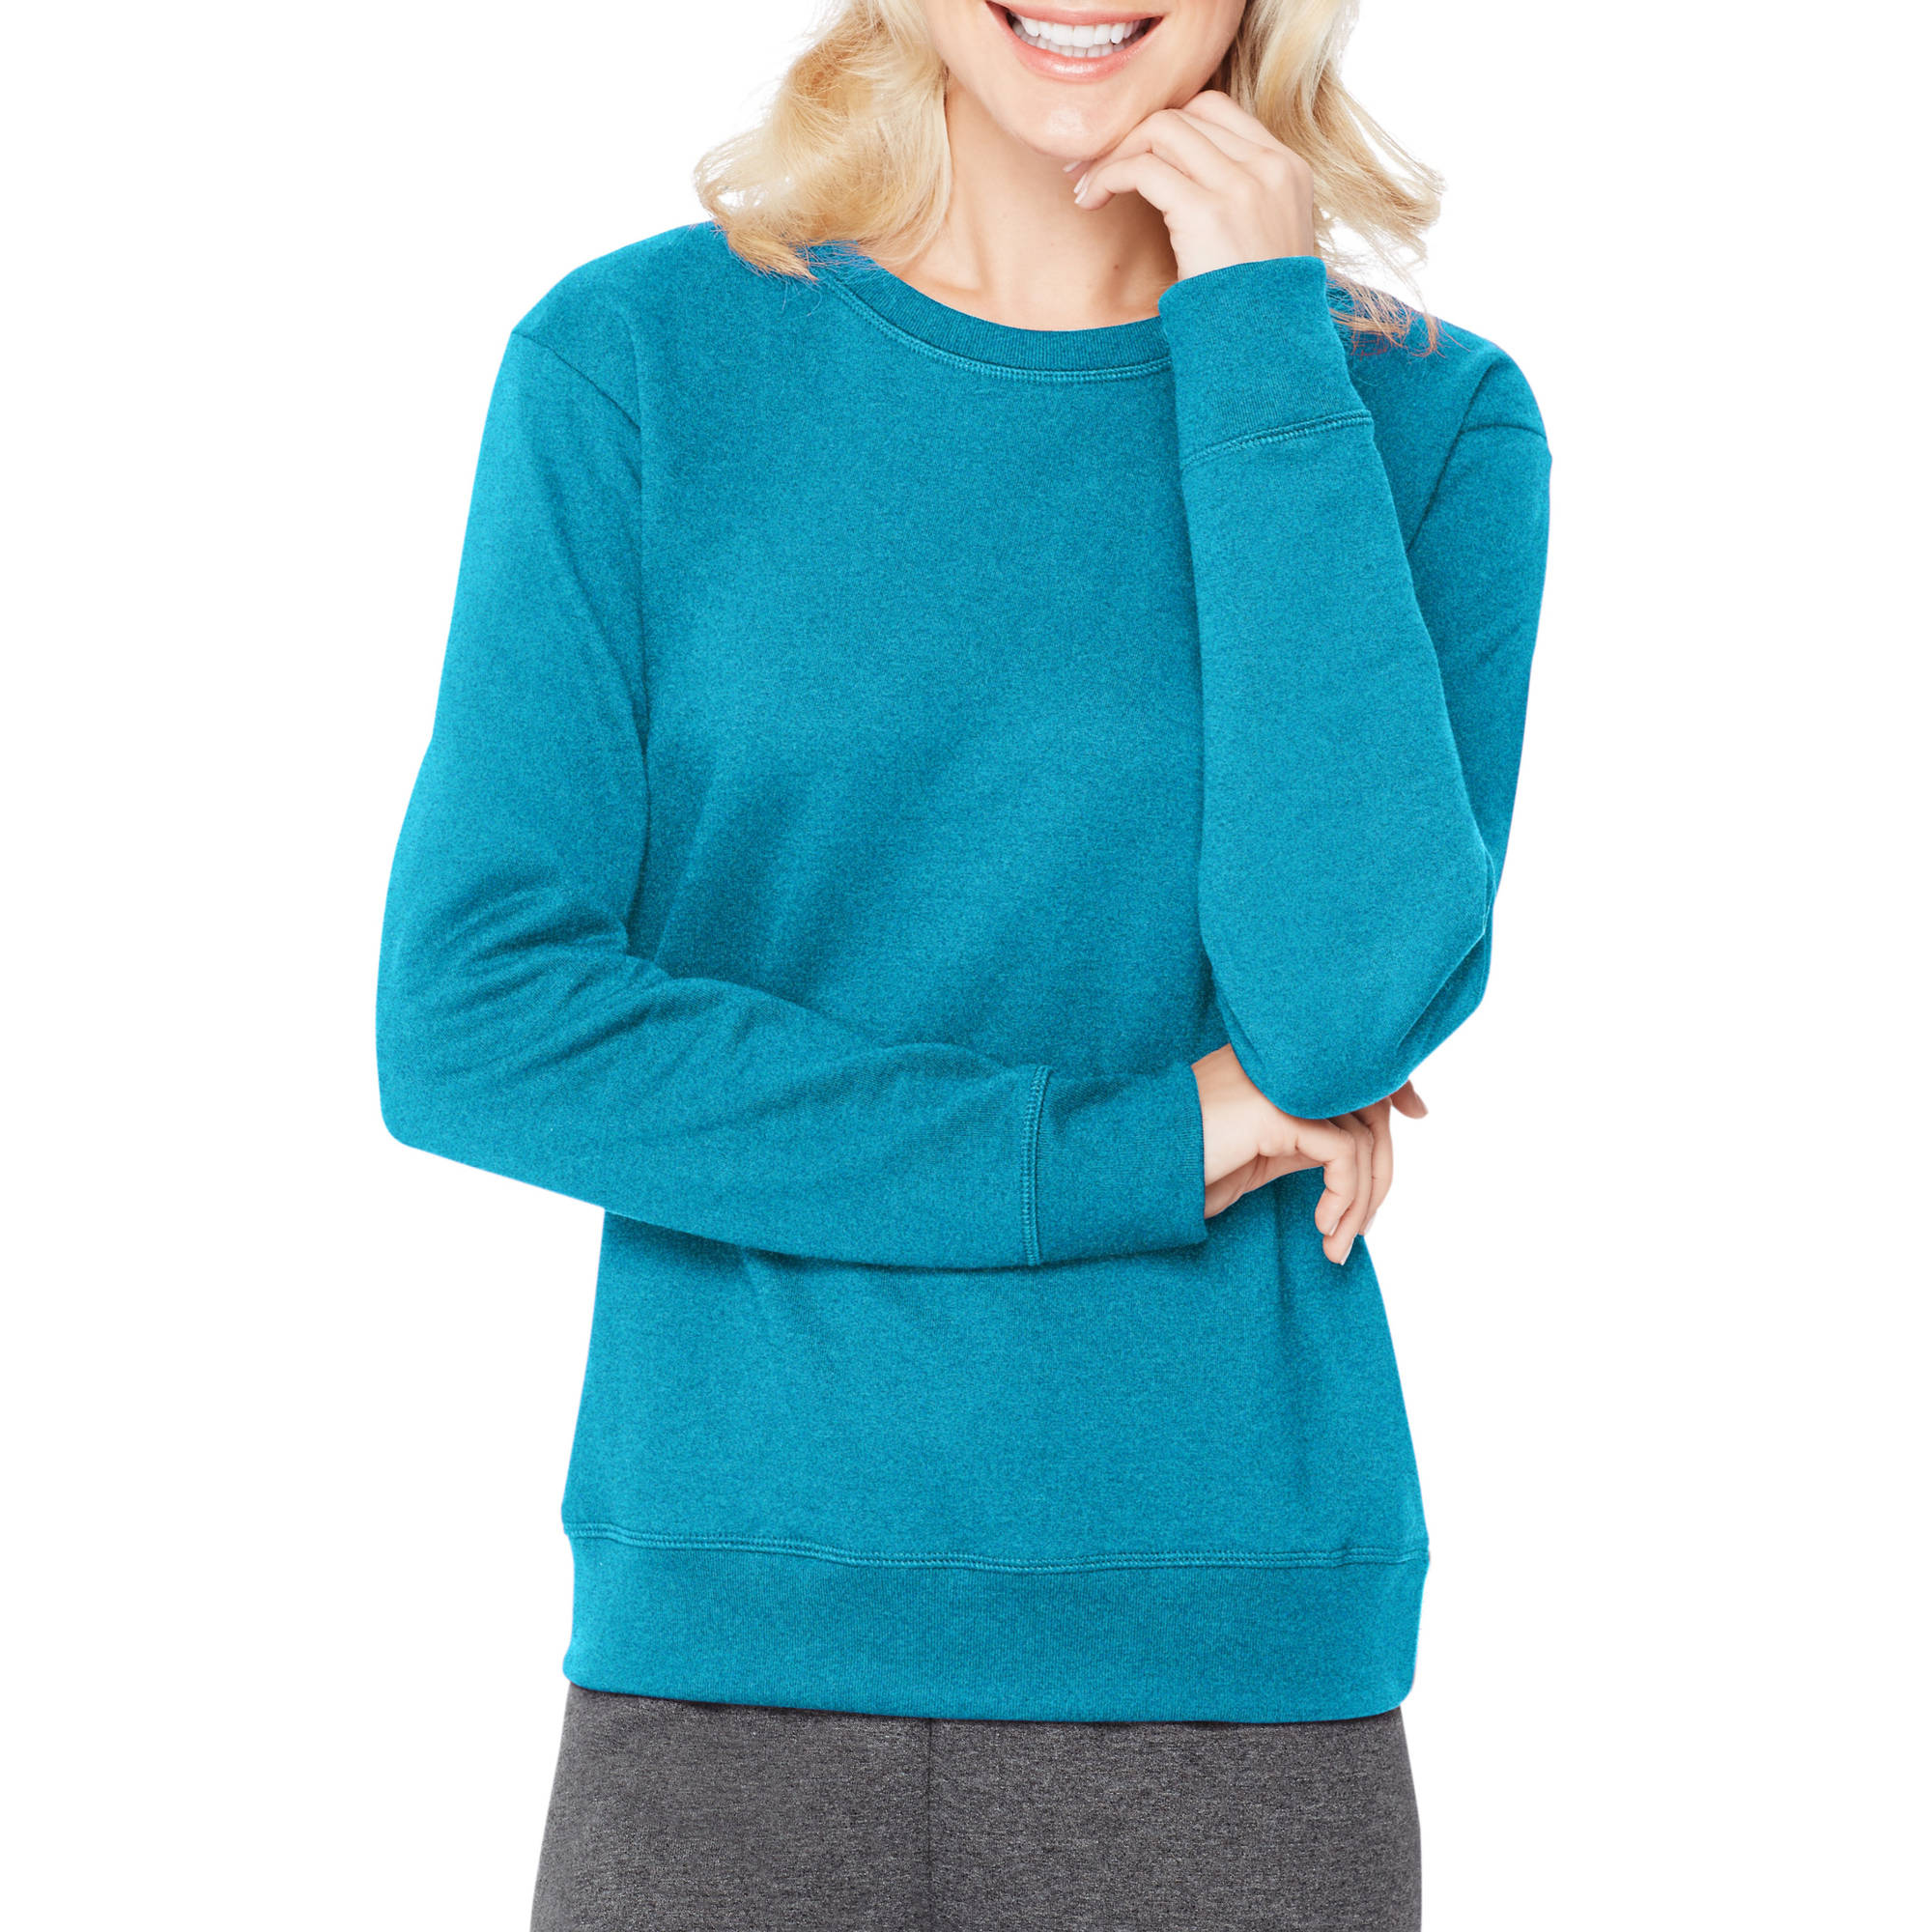 Hanes Women's Essential Crewneck Fleece Pullover Sweatshirt